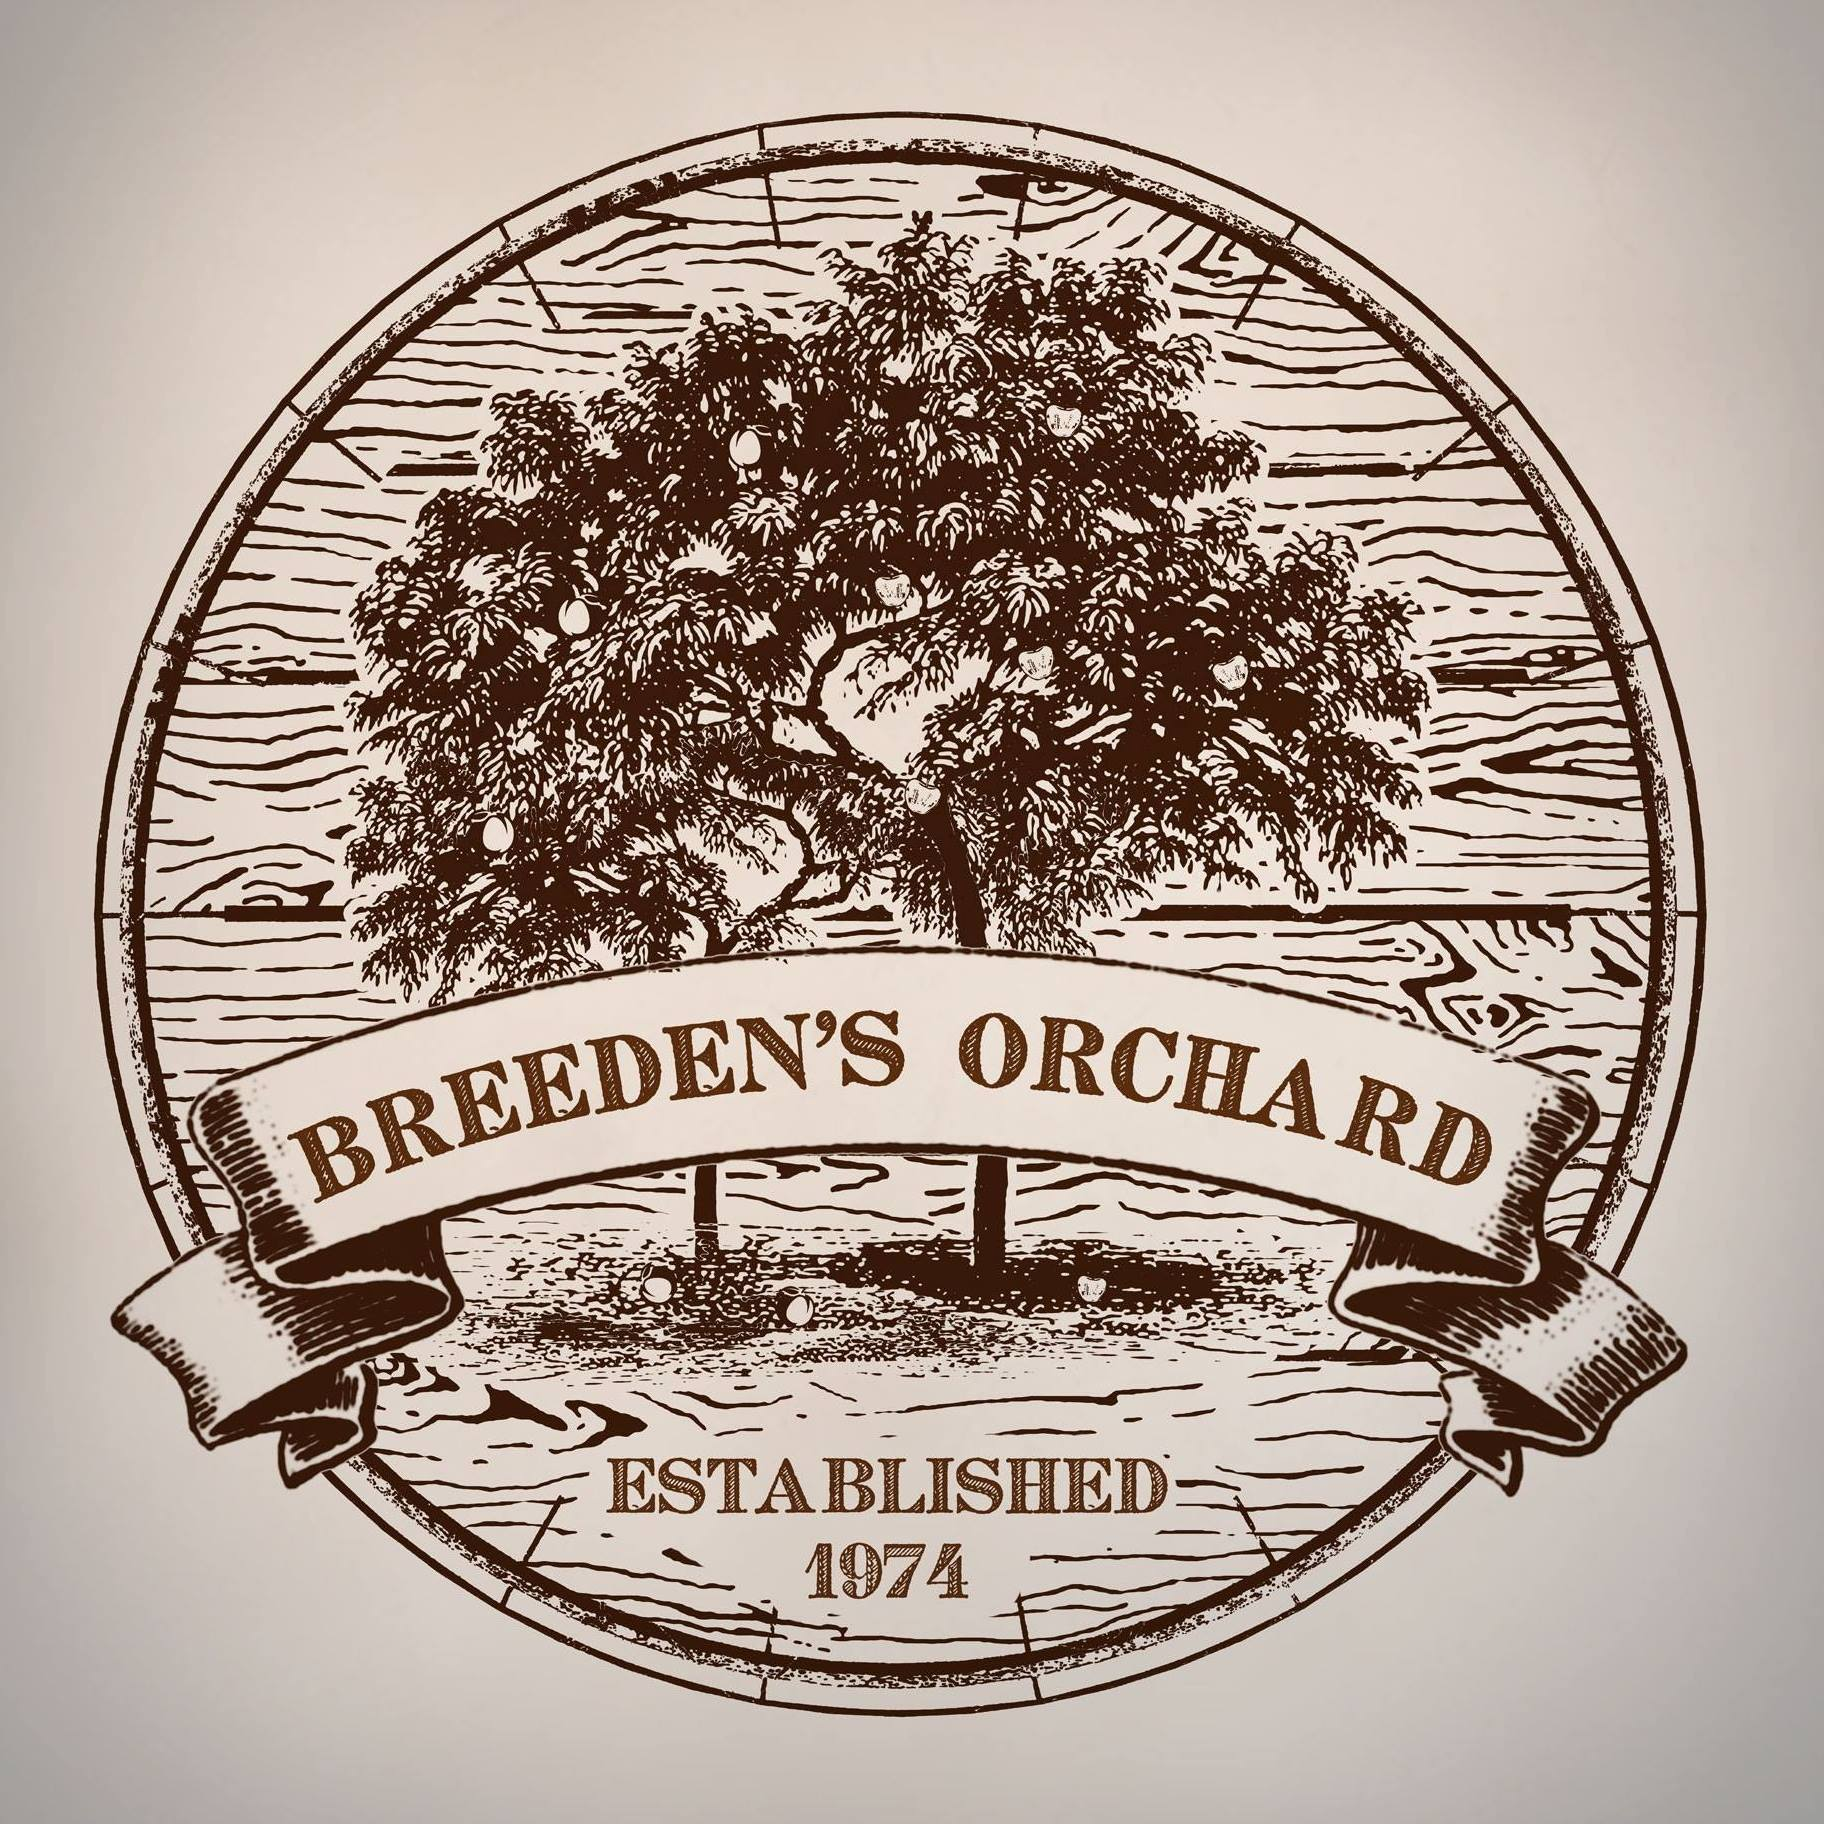 Breedens Orchard